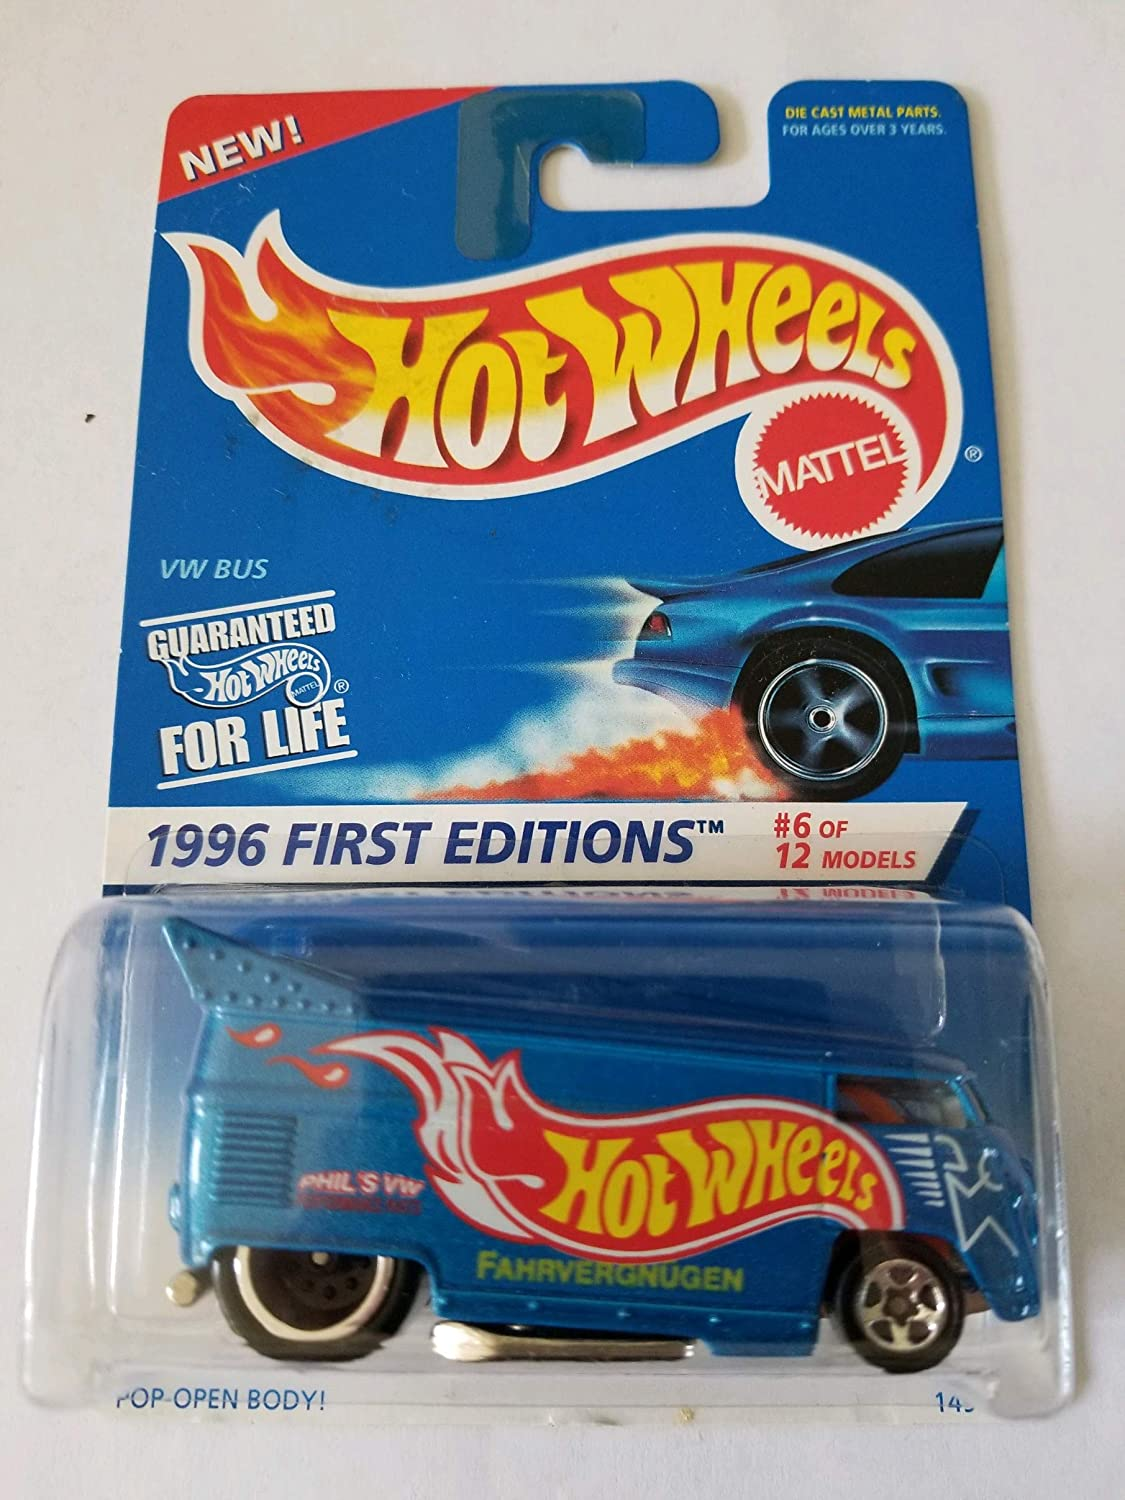 Amazon Com Hot Wheels 1996 First Editions 6 Of 12 Vw Volkswagen Bus Blue Body Color W Graphics Collector 372 Toys Games